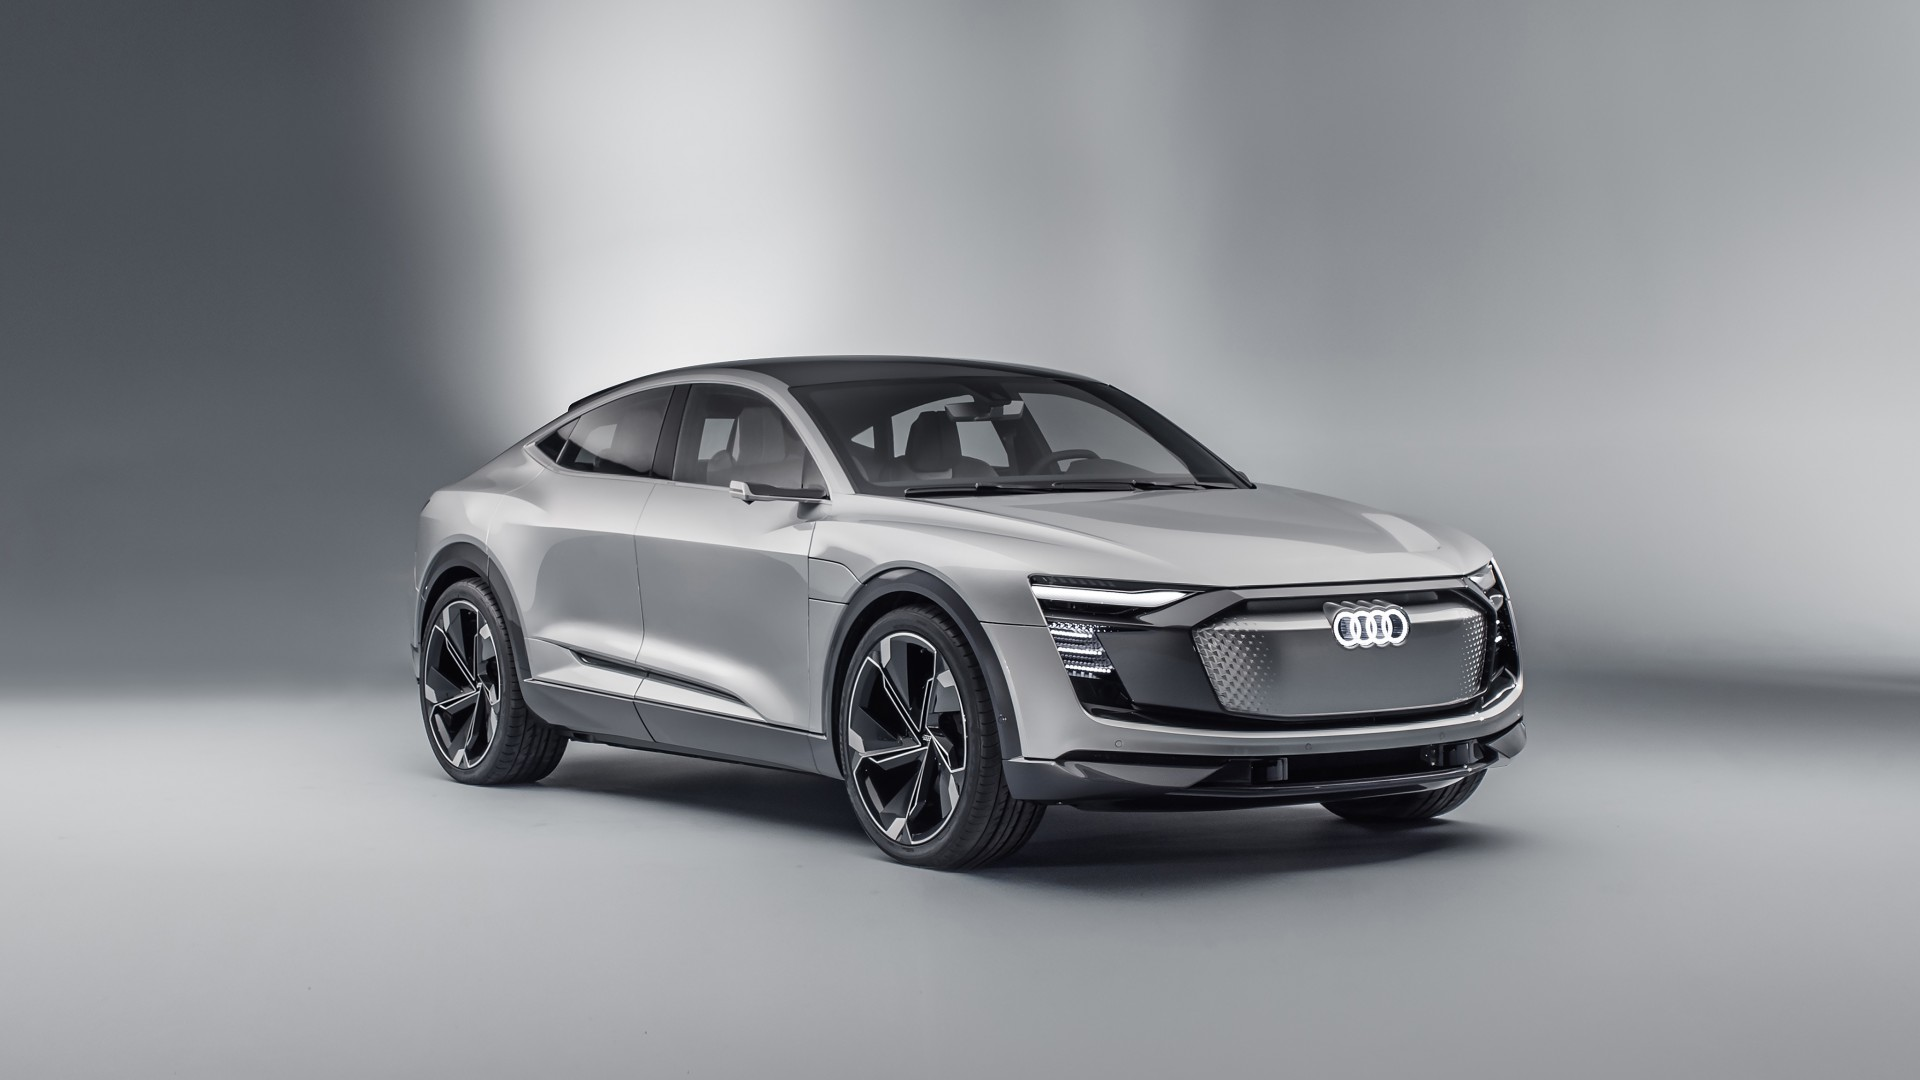 audi e tron sportback concept 3 wallpaper hd car wallpapers id 7753. Black Bedroom Furniture Sets. Home Design Ideas